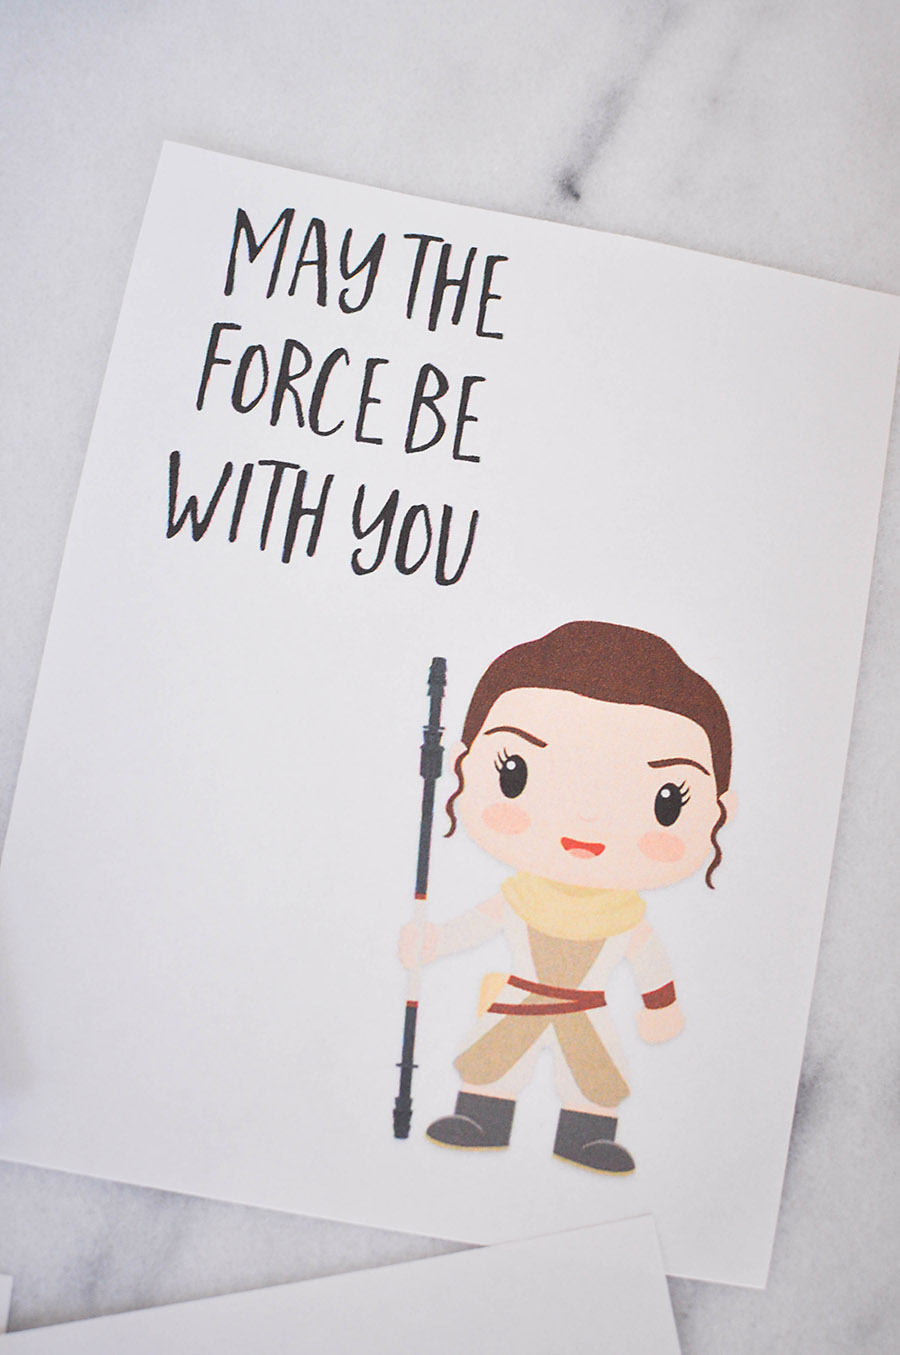 Rey - Star Wars: The Force Awakens Valentines Day Cards | Wit & Wander